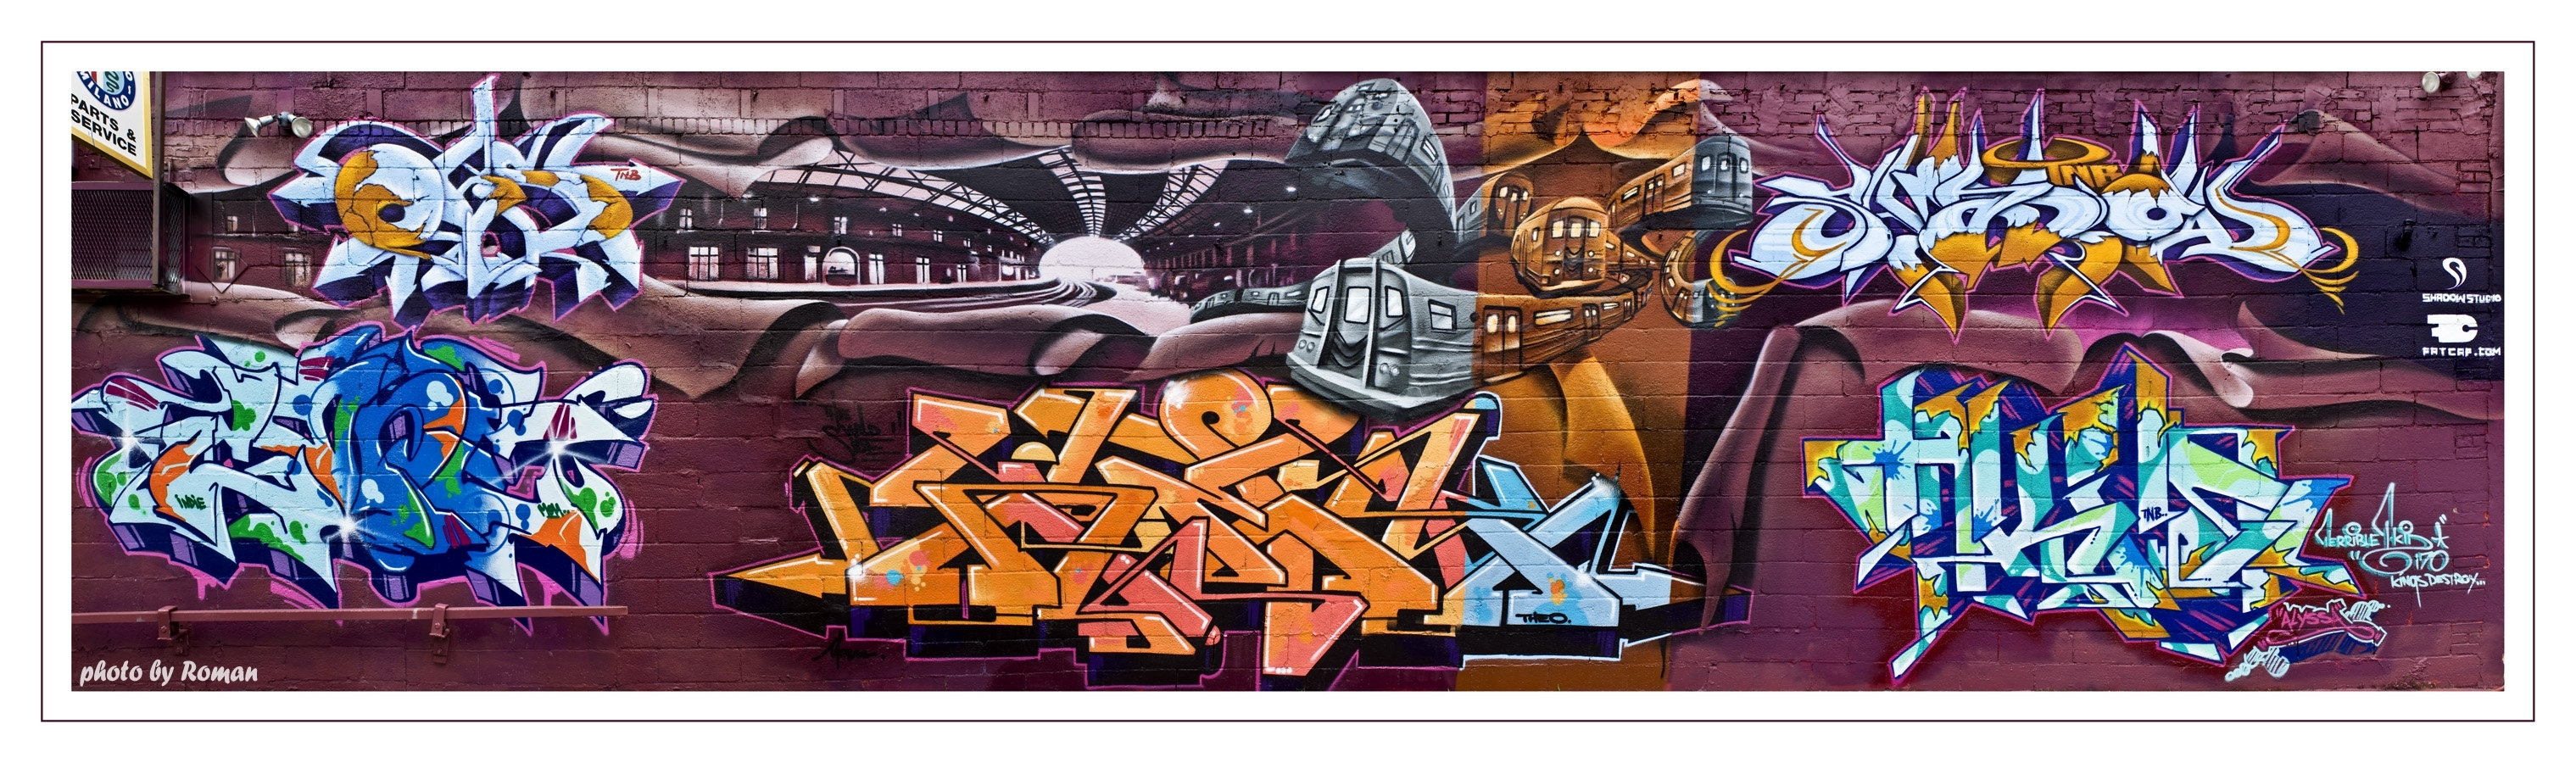 Nyc Wall #1 - Covering - Street-Art And Graffiti | Fatcap pertaining to Newest Nyc Wall Art